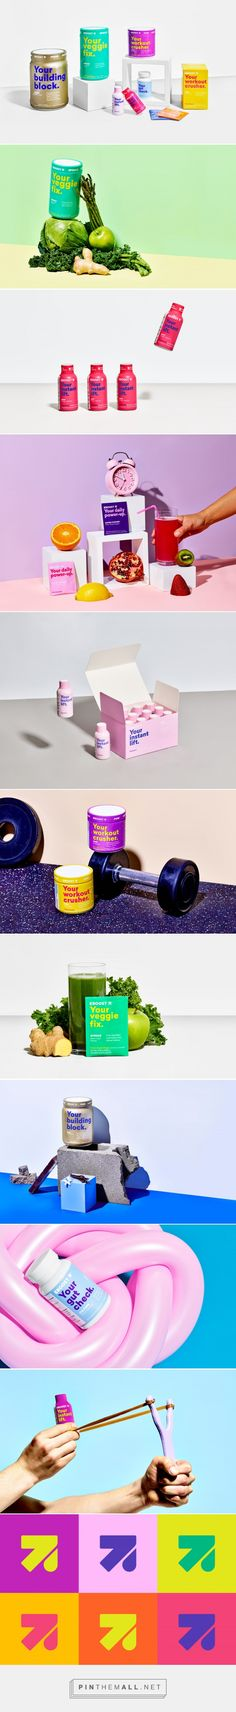 Eboost Protein Products design packaging by Gander